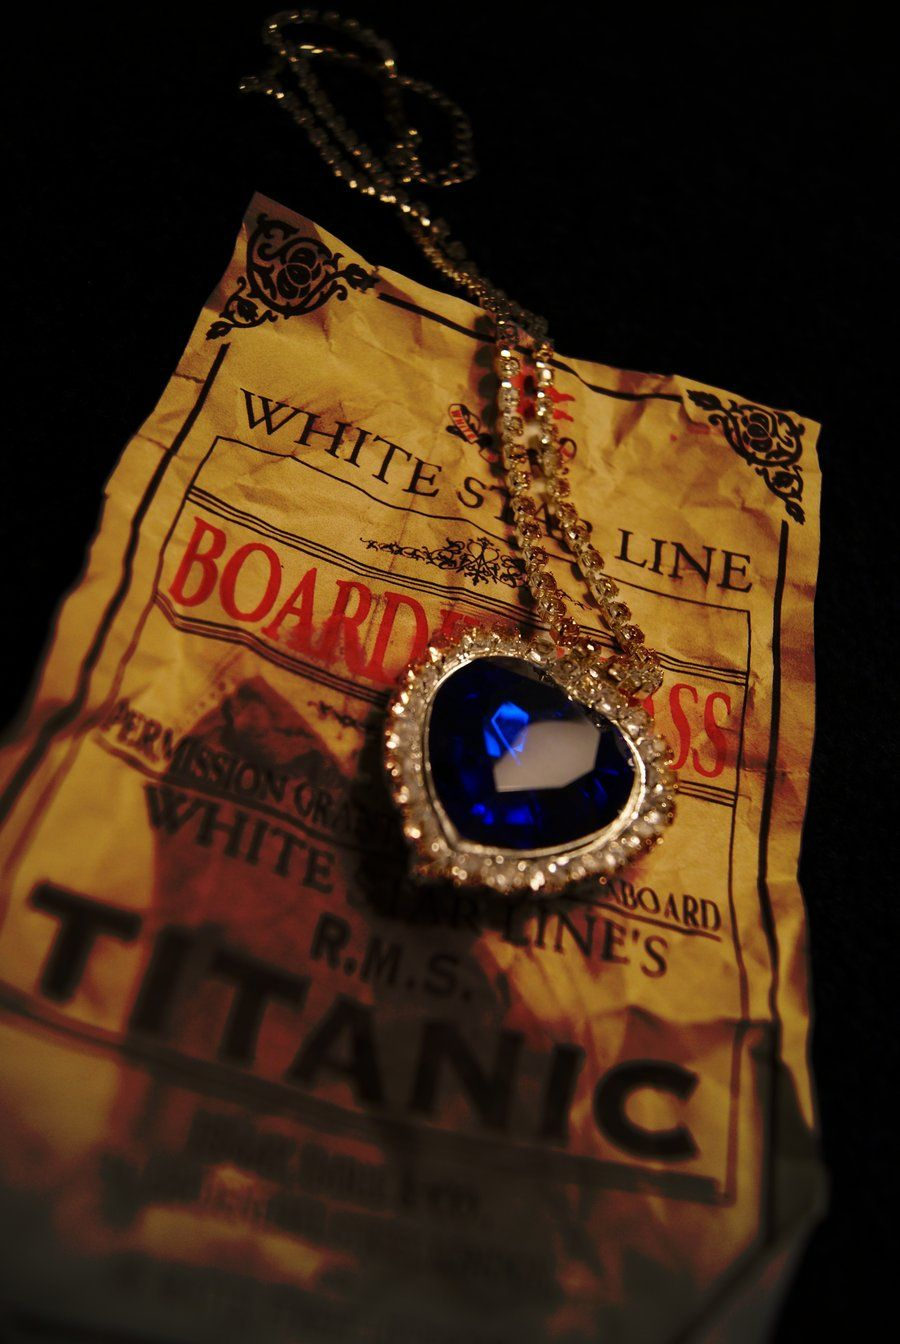 White Star Line by MicWits101 on DeviantArt